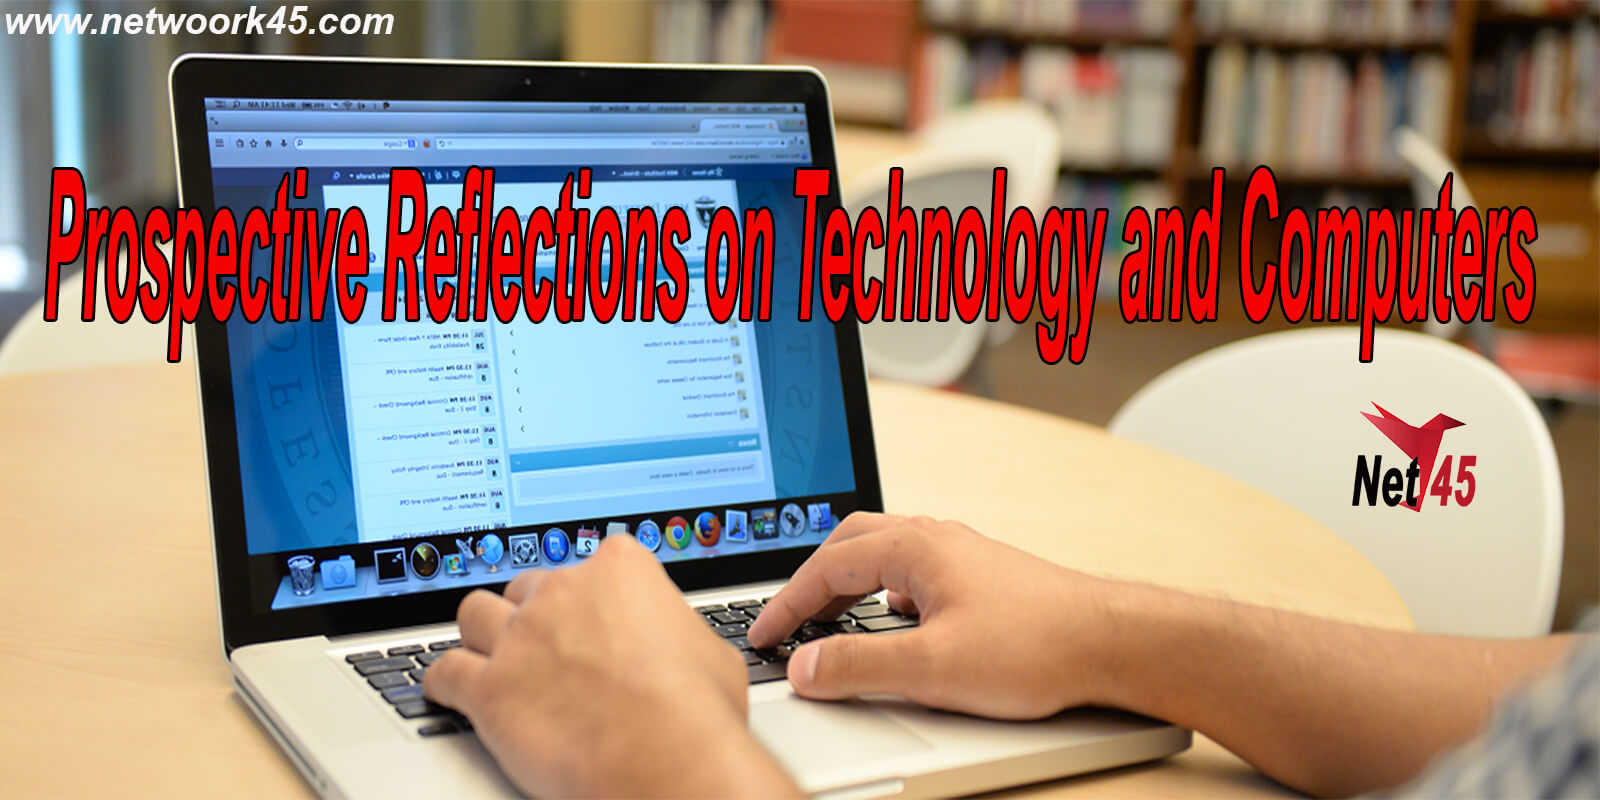 technology,computer,prospective studen,perspective matching,pennsylvania college of technology,perspective transform,education,computer science (field),computer science,computer vision,technologie,lighting and rendering,logo in perspective,correct perspective,brand engagement